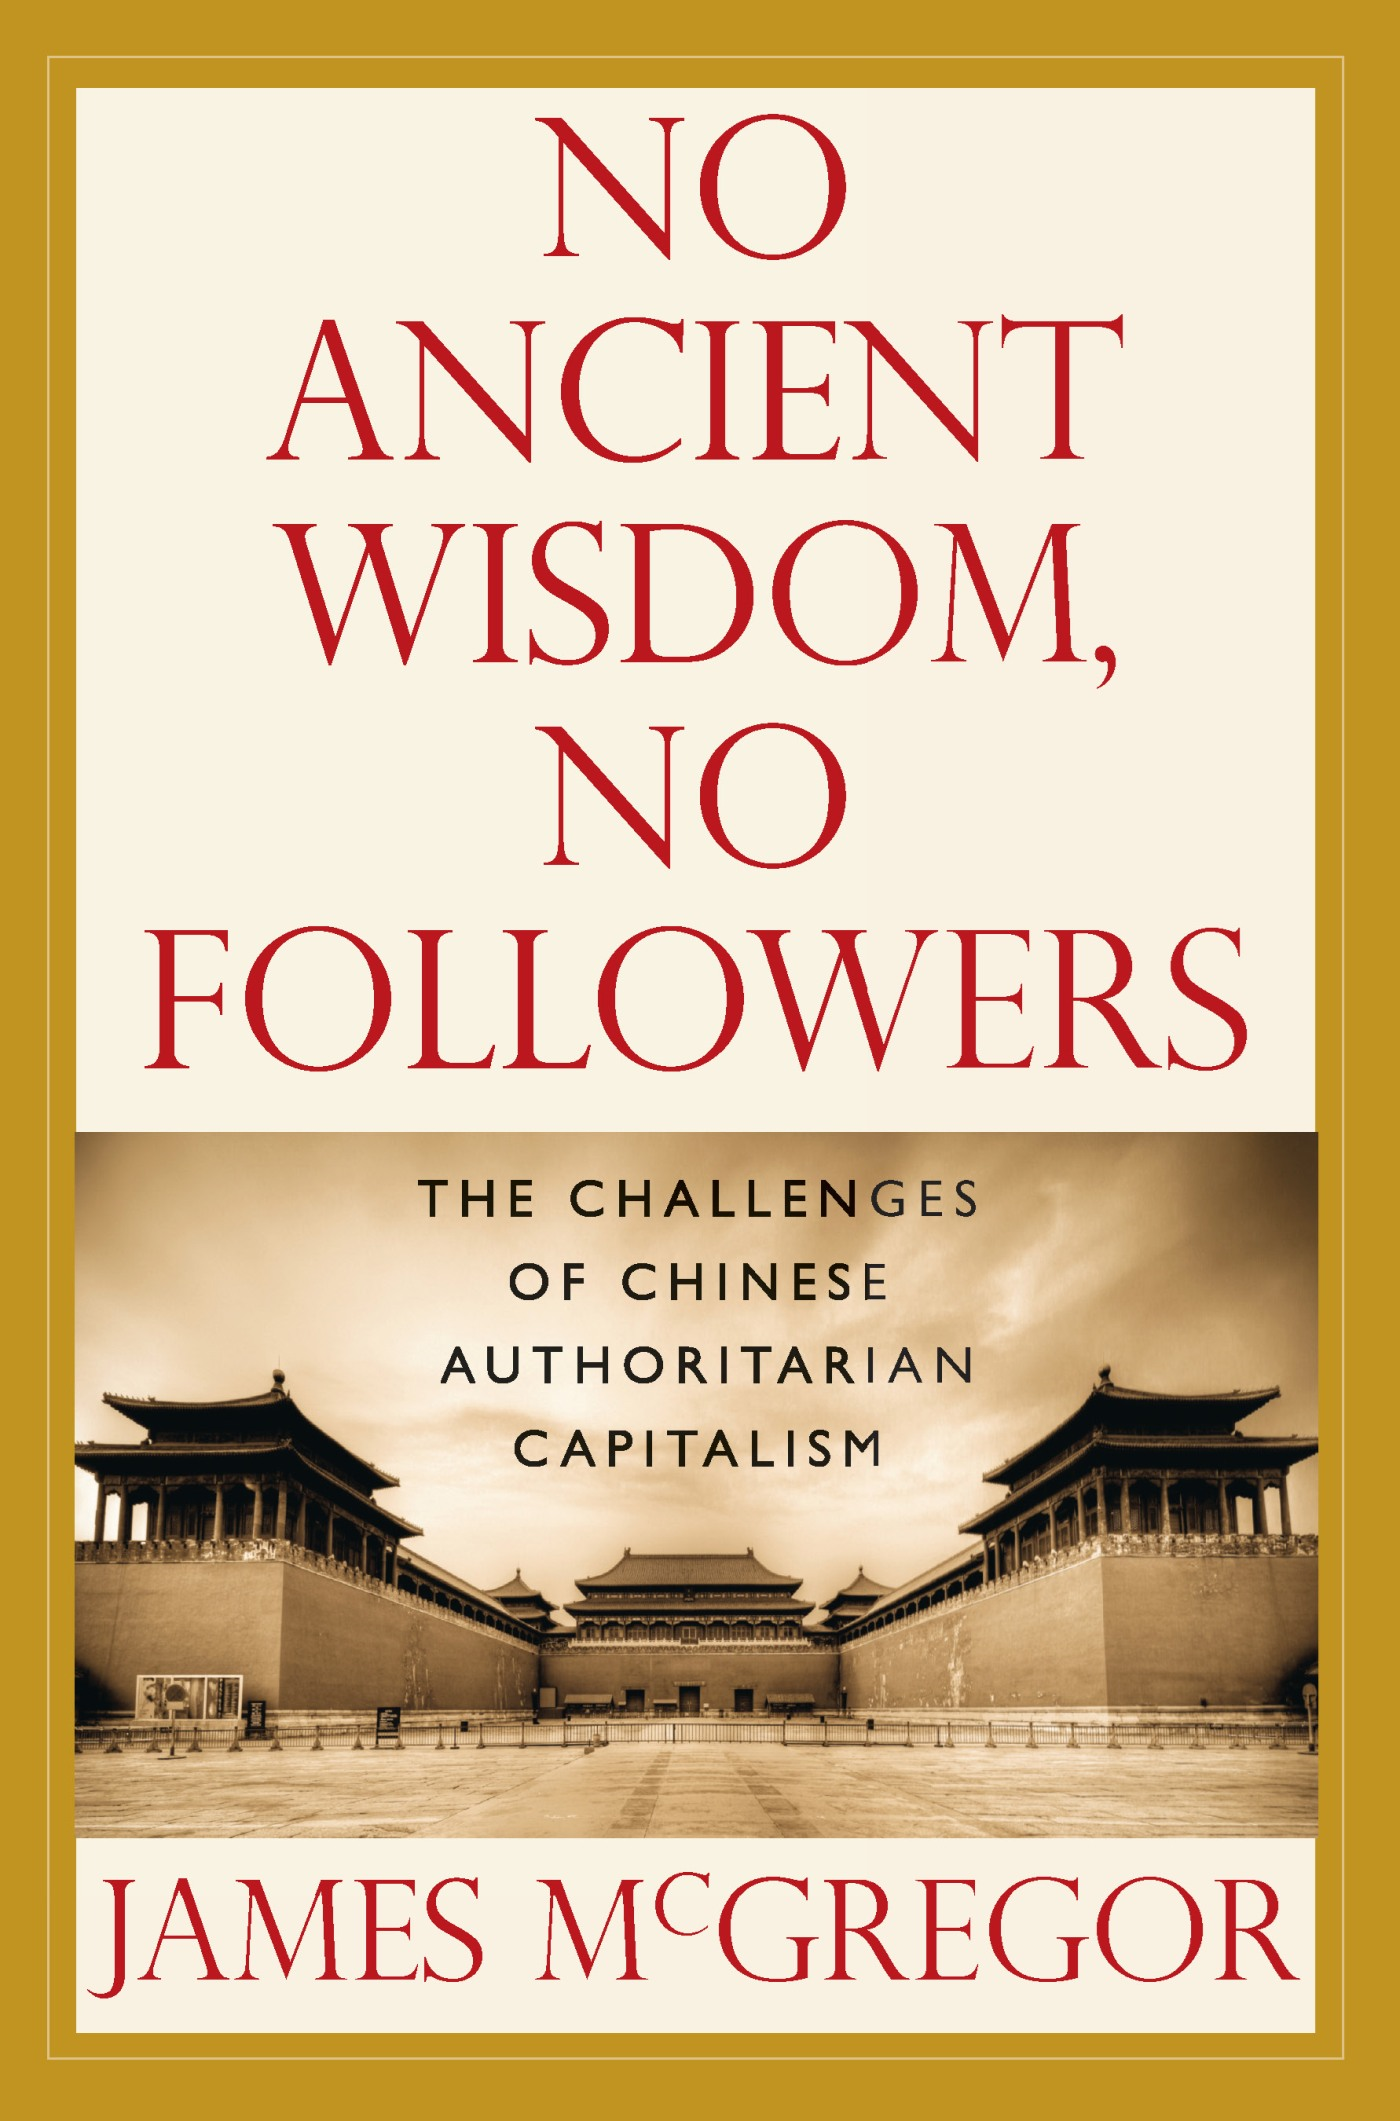 James McGregor - NO ANCIENT WISDOM, NO FOLLOWERS: The Challenges of Chinese Authoritarian Capitalism